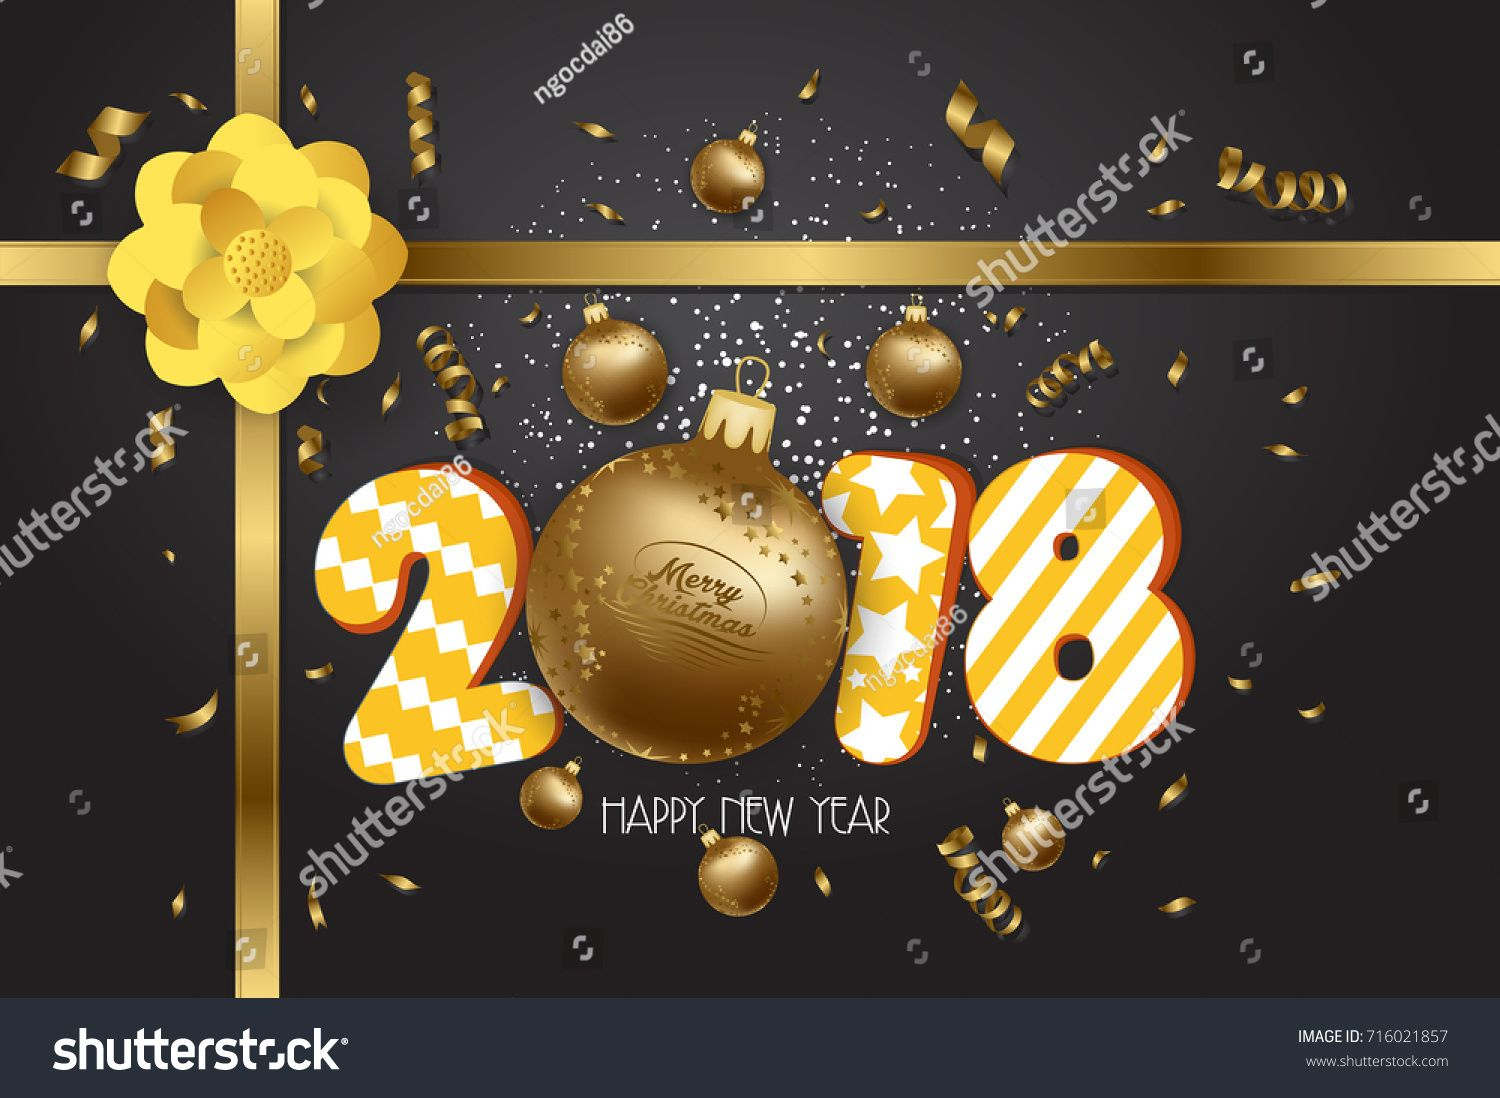 Merry Christmas And Happy New Year 2018 Greeting Card Happy New